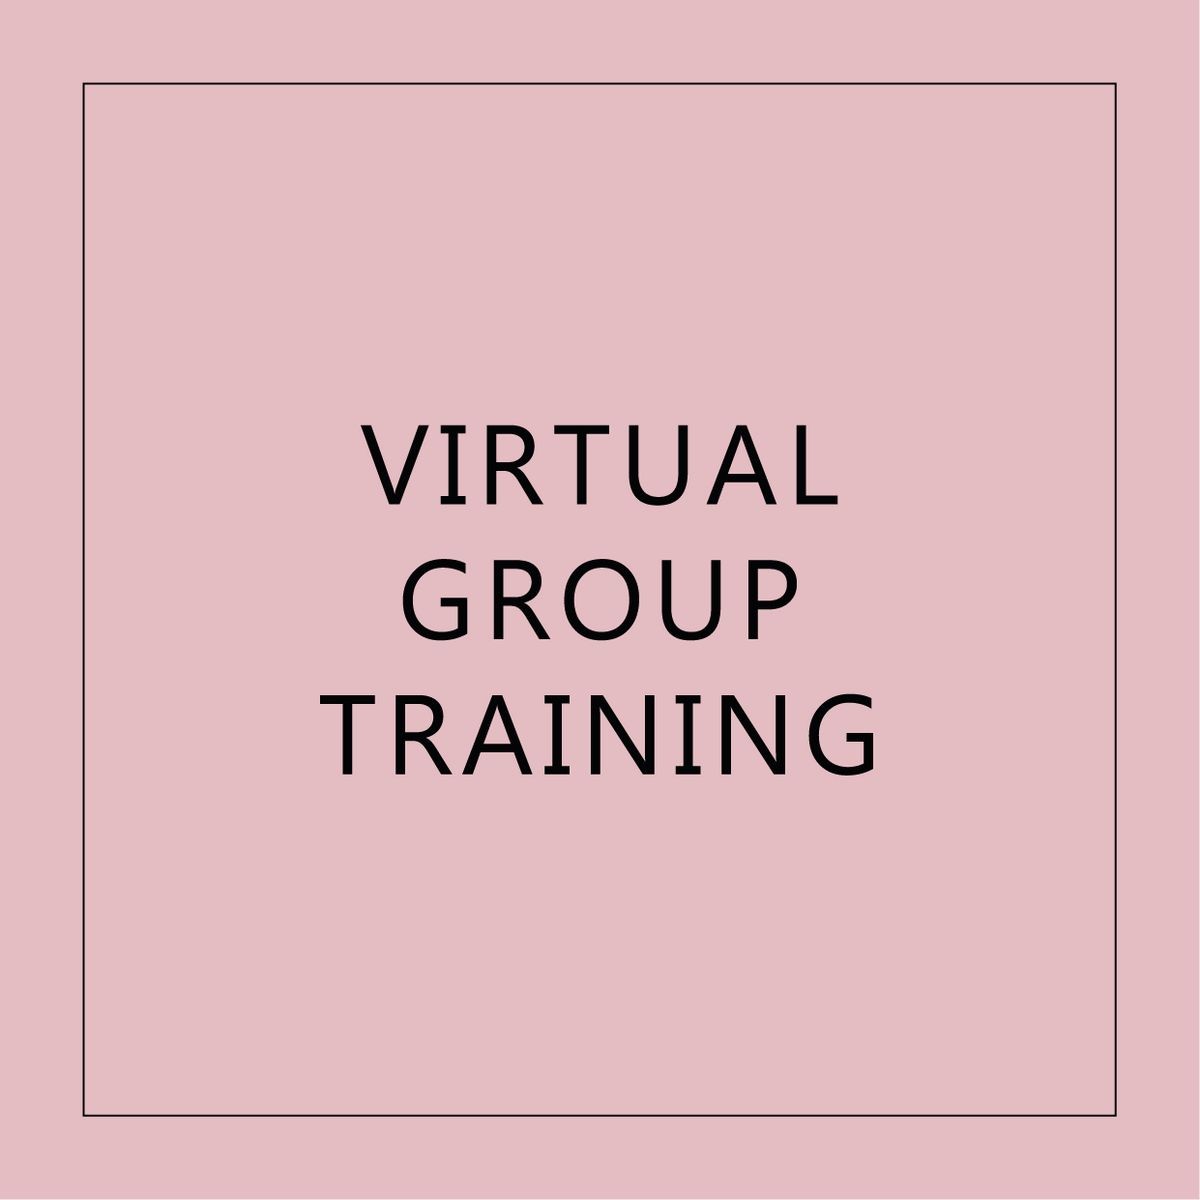 Virtual Group Training